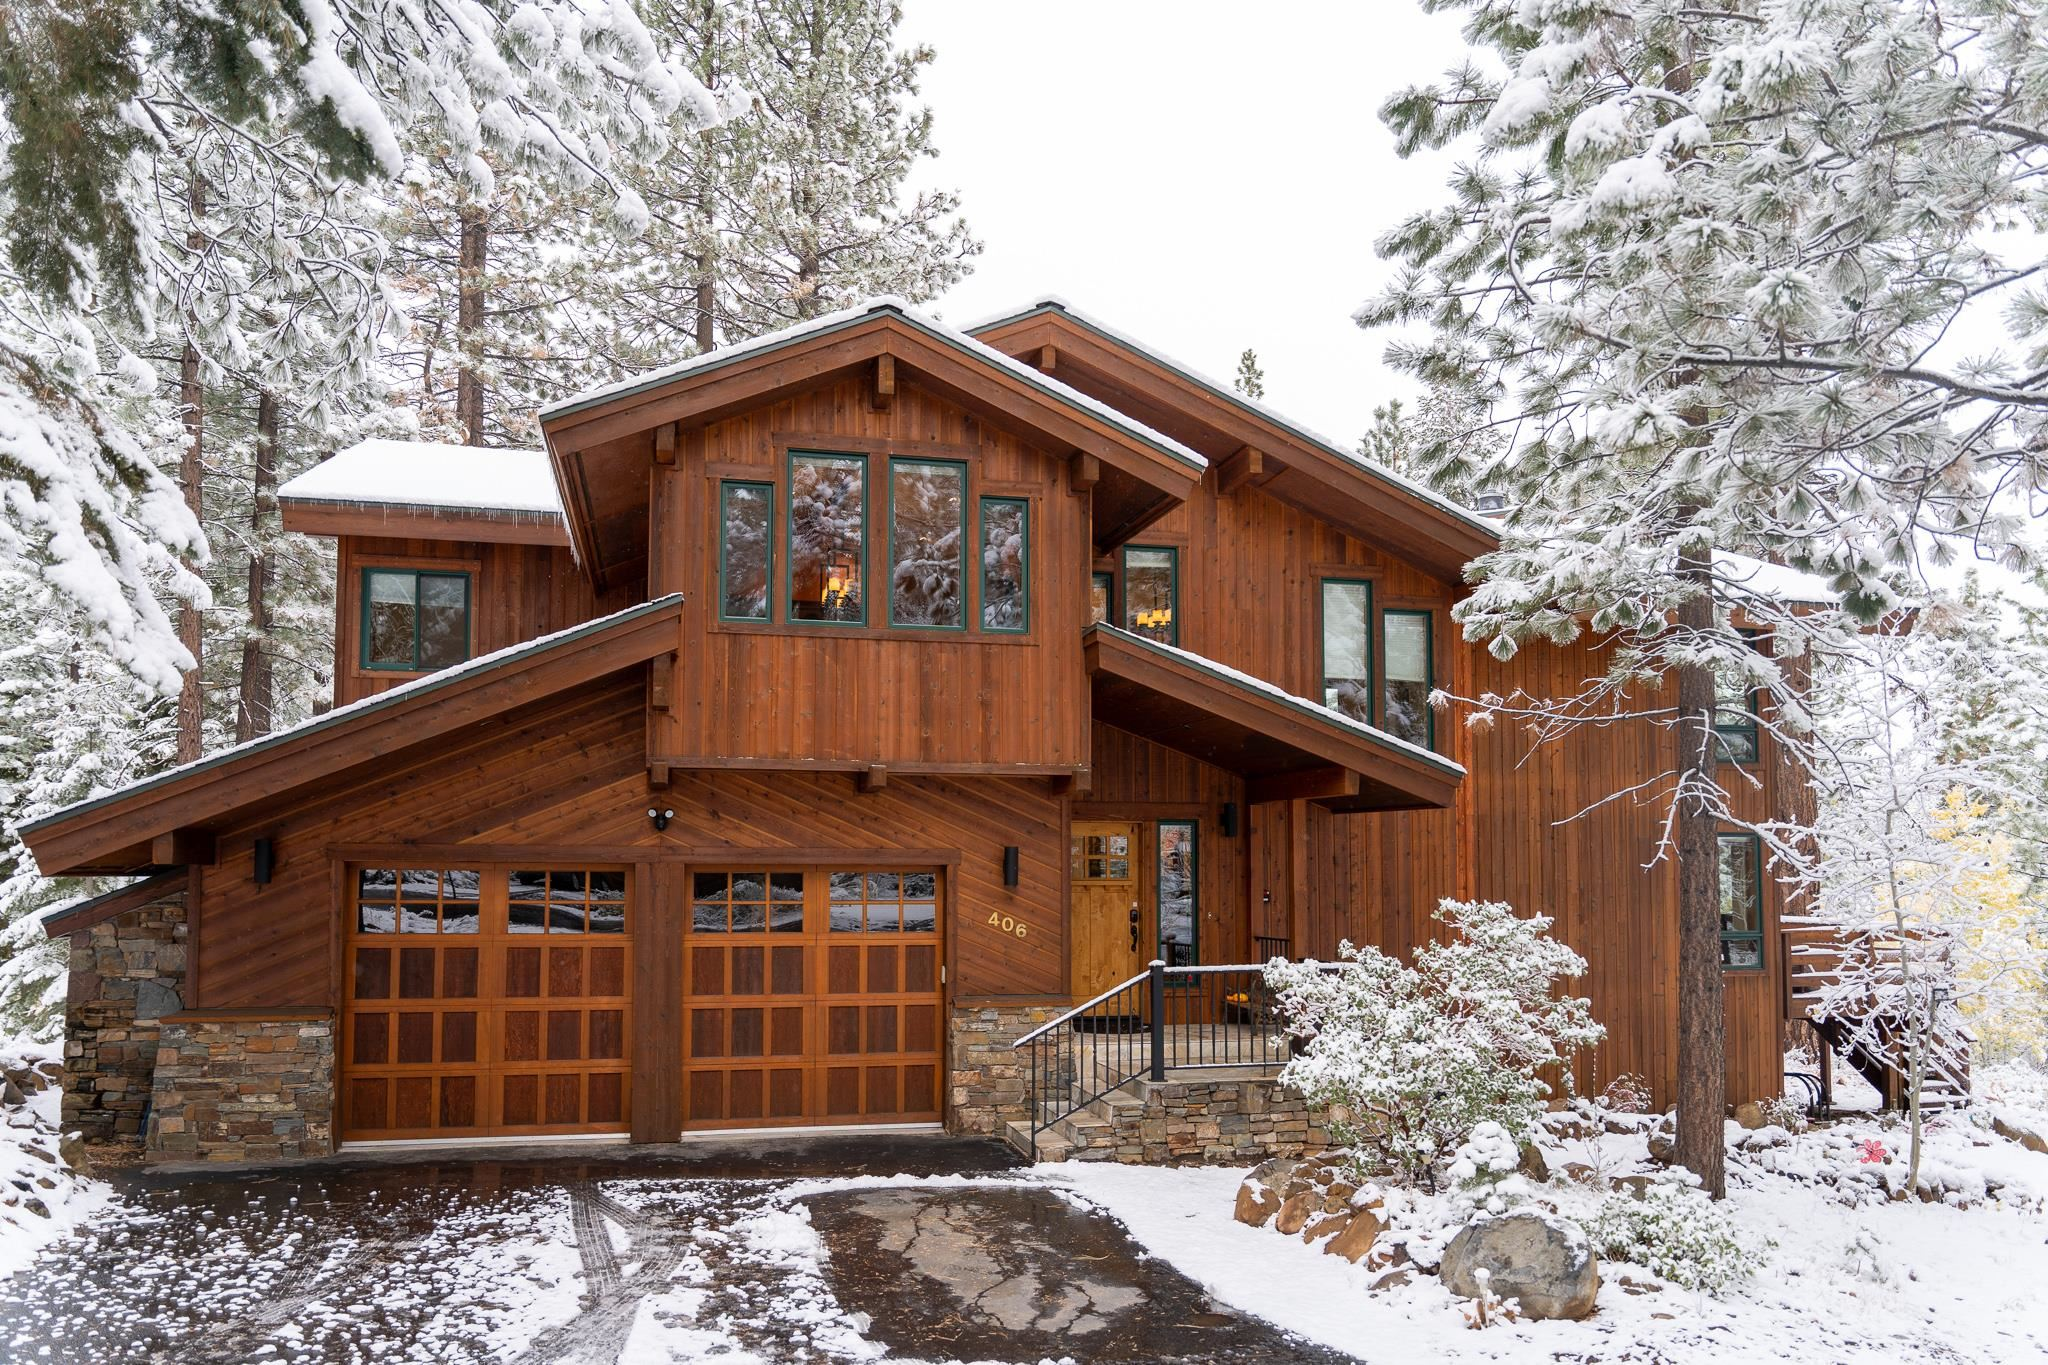 Image for 406 Lodgepole, Truckee, CA 96161